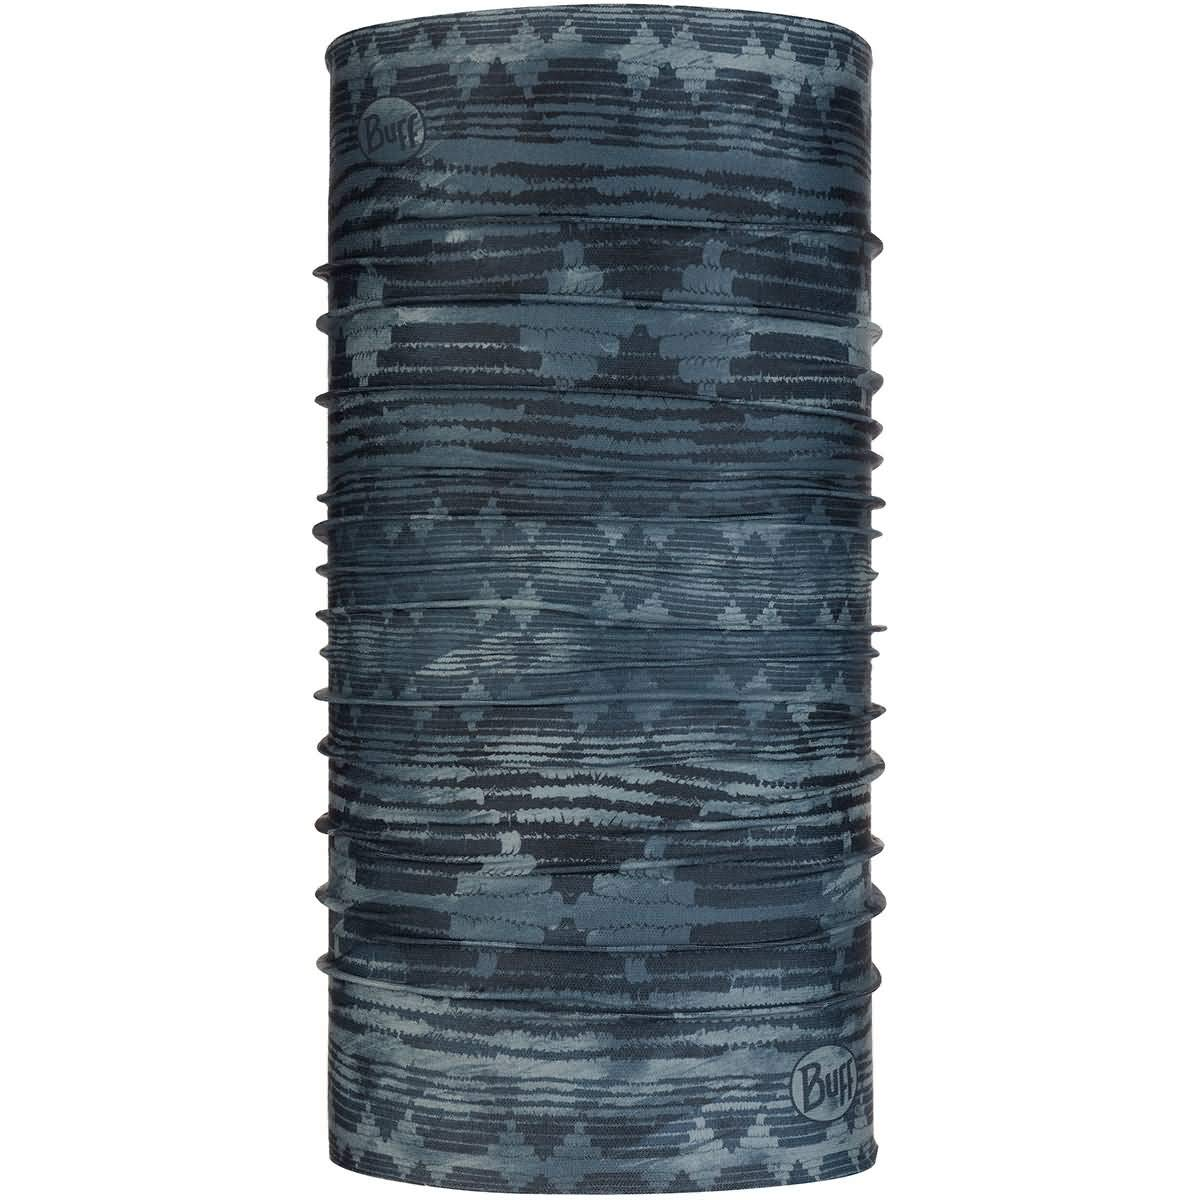 Buff CoolNet UV+ Headwear,One Size,Tzom Stone by Buff